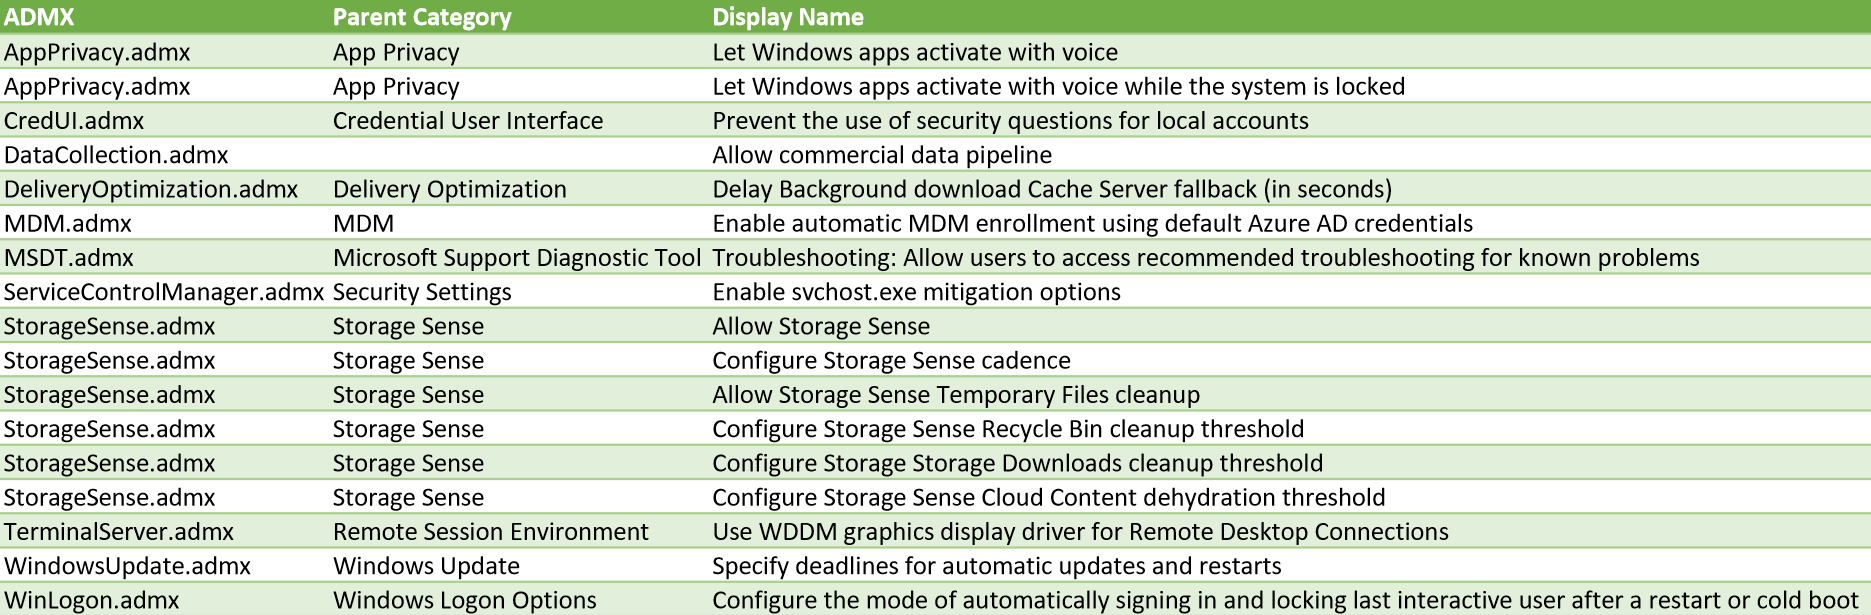 Group Policy Changes in Windows 10 1903 Preview - Vacuum